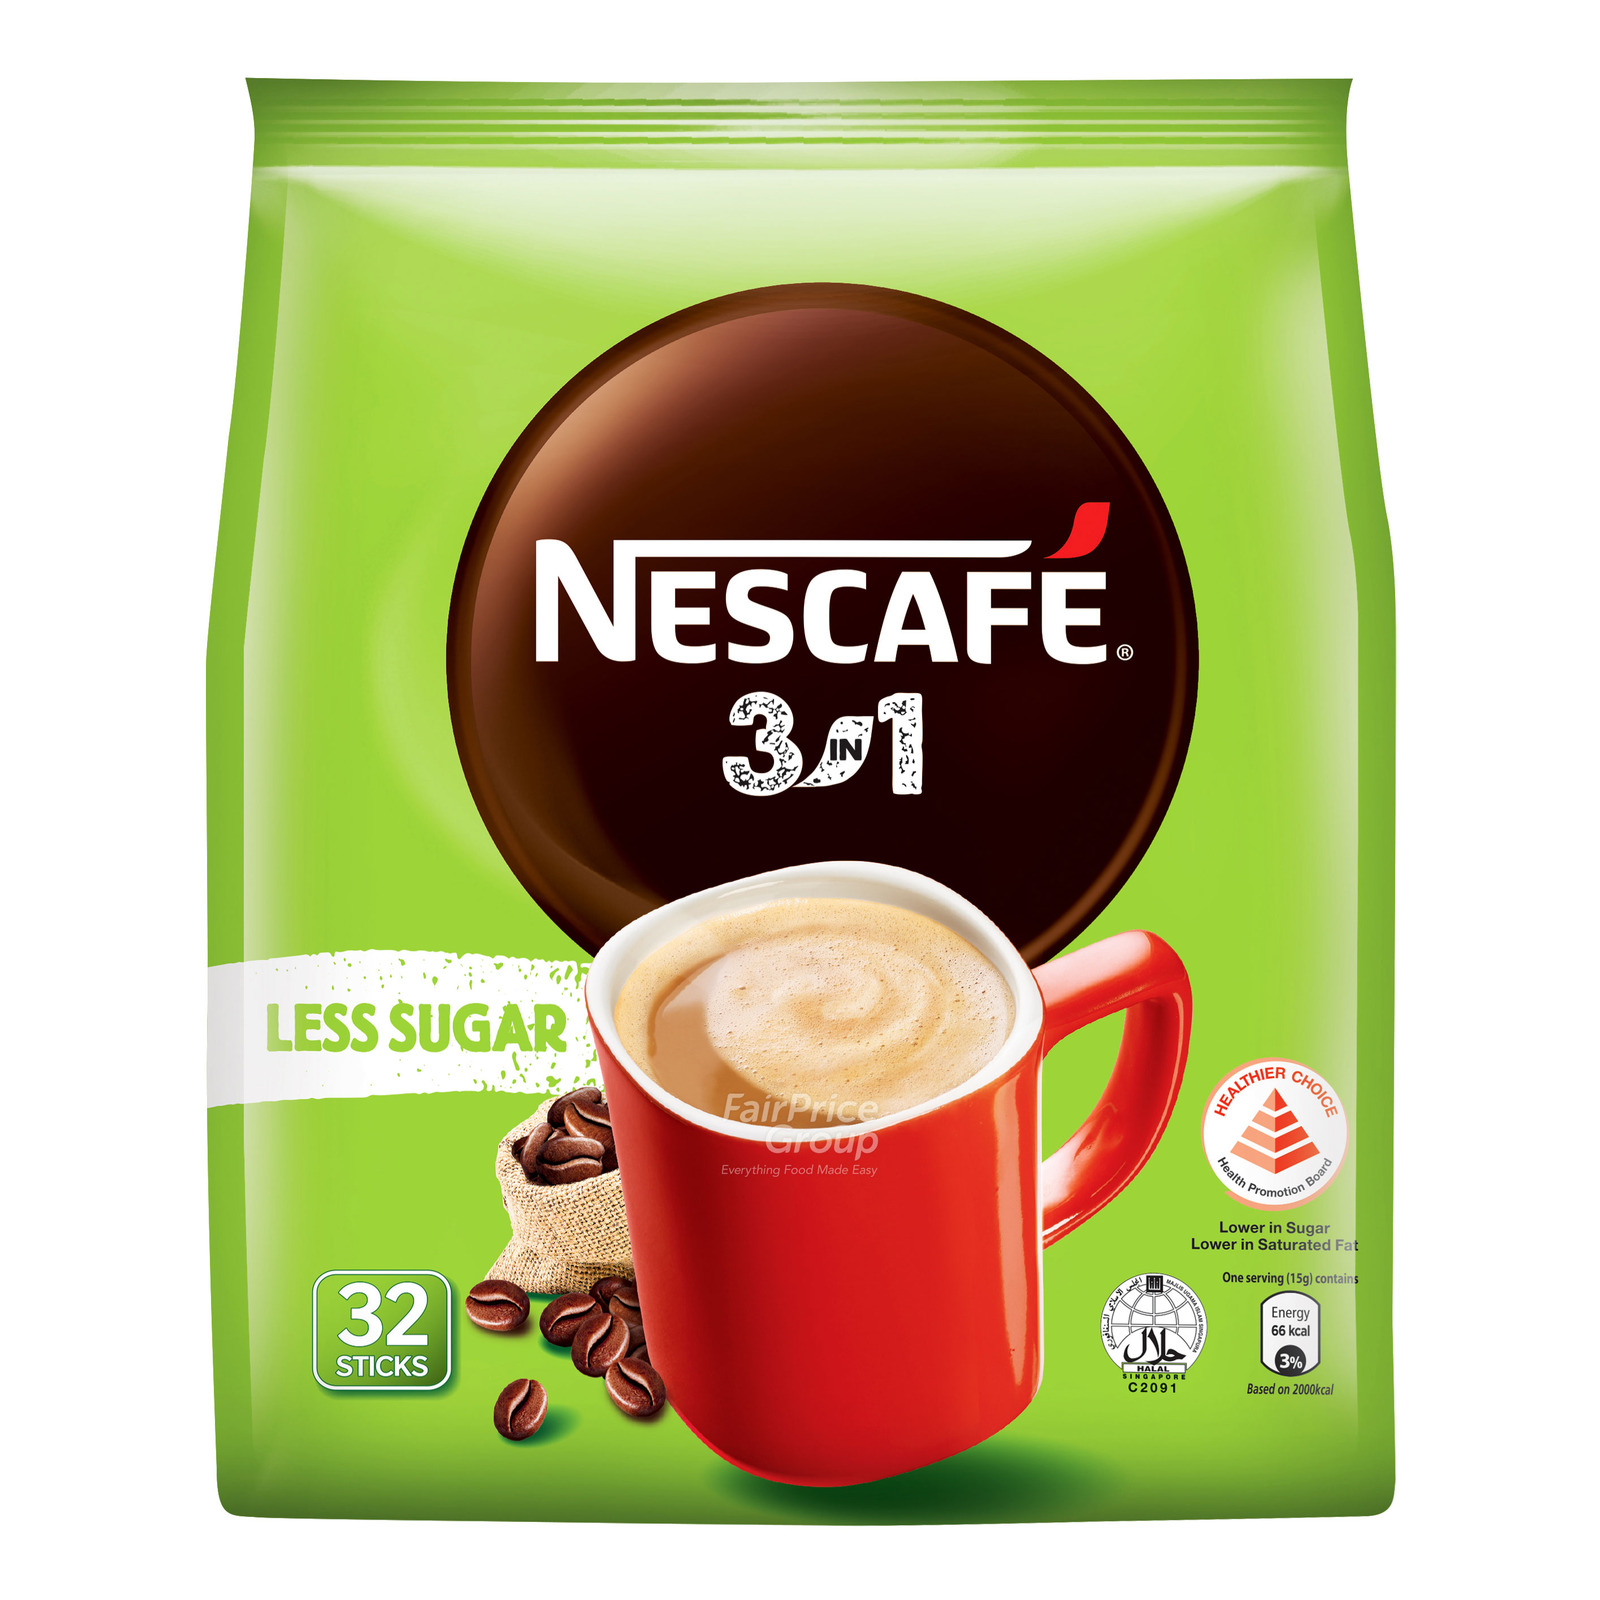 Nescafe 3 in 1 Instant Coffee - Original (Less Sugar)